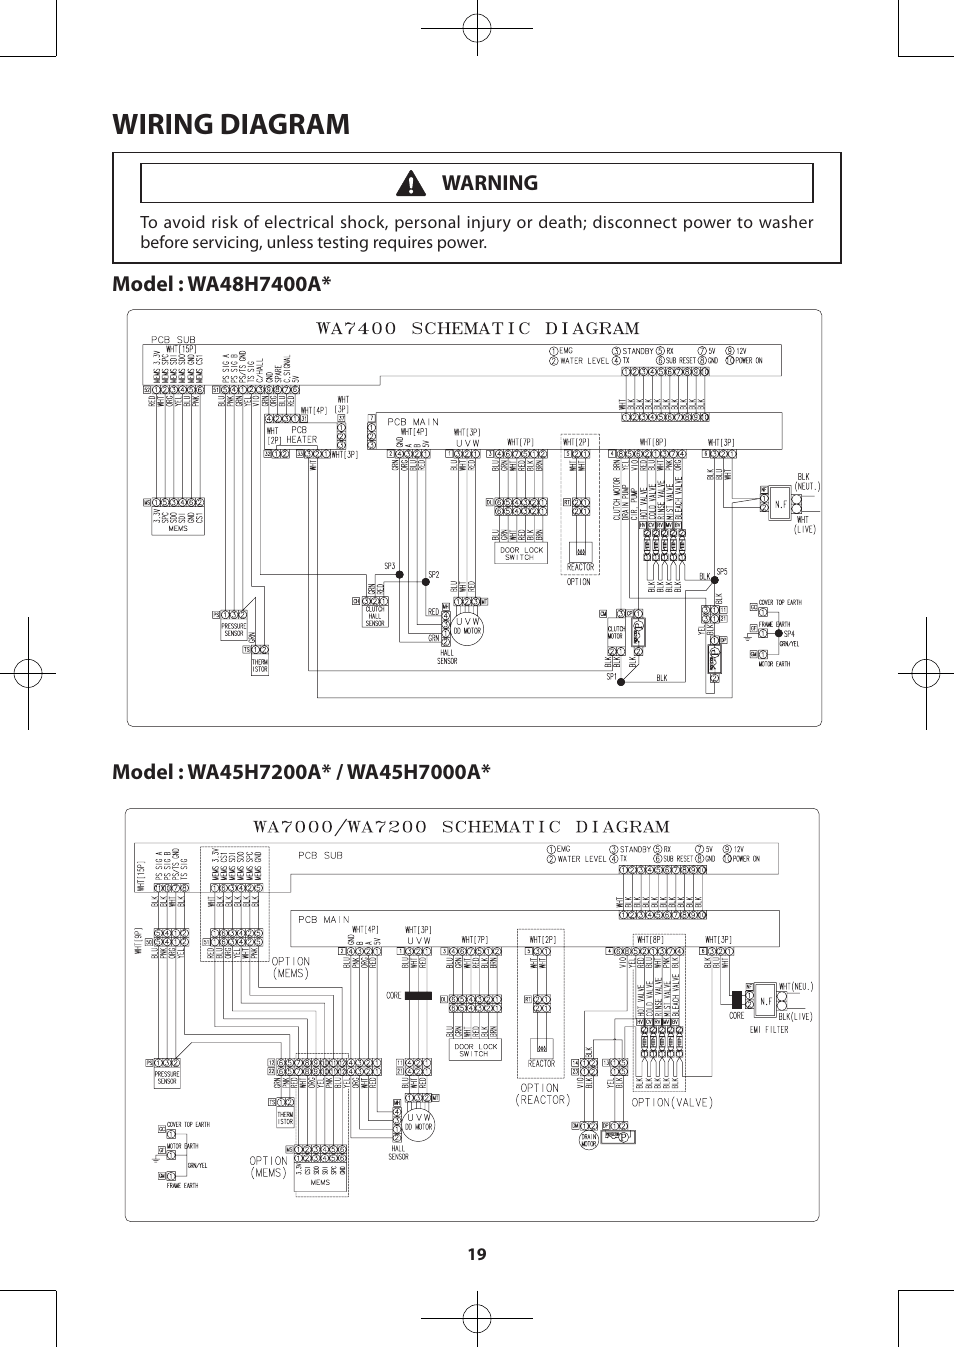 hight resolution of wiring diagram samsung wa48h7400aw a2 user manual page 19 60 a2 wiring diagram a2 wiring diagram